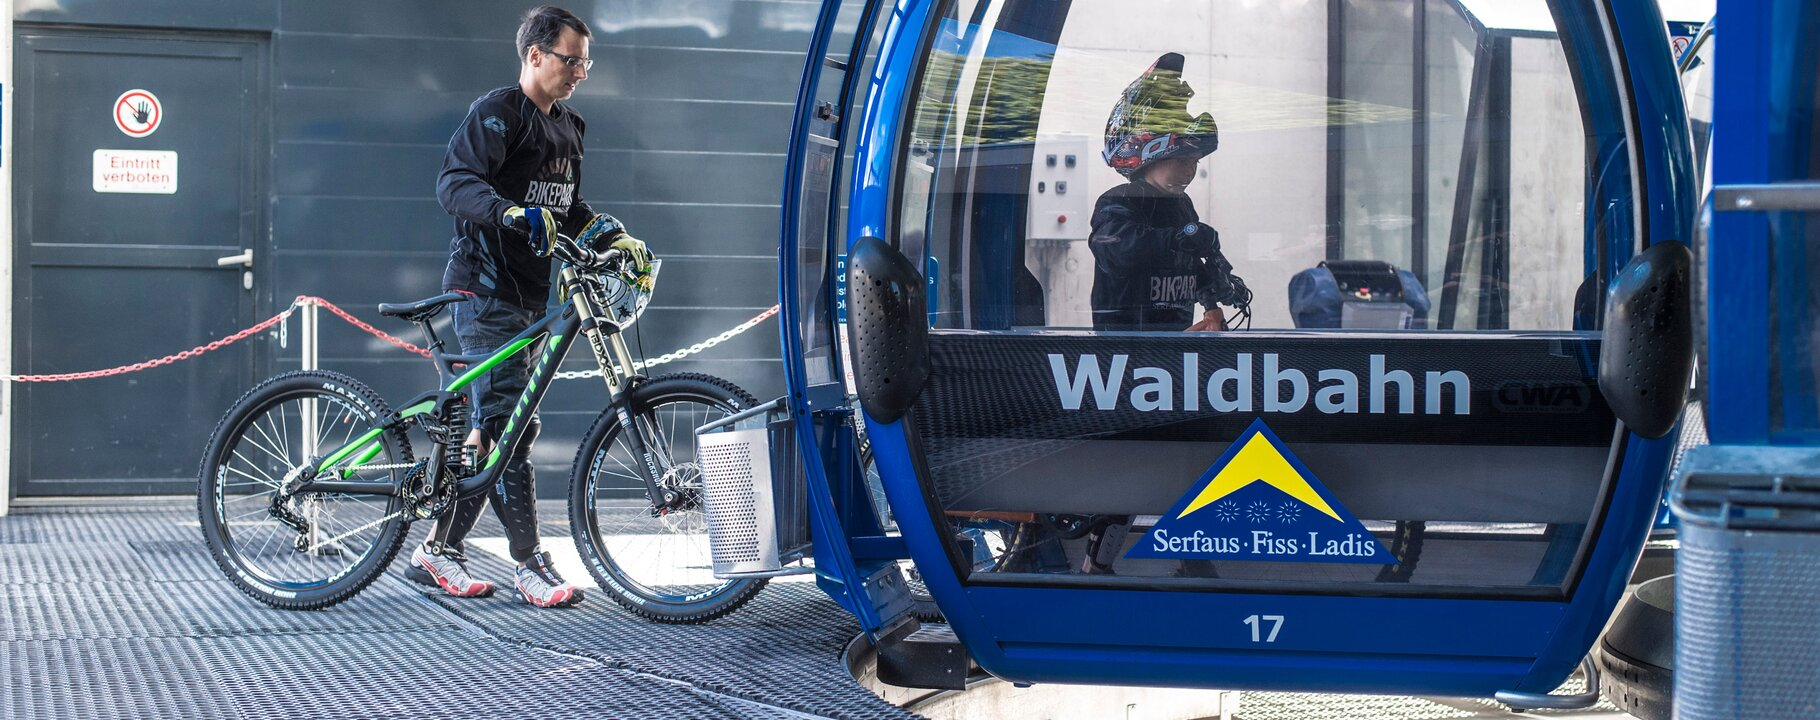 in the gondolas with the bike | © Bikepark Serfaus-Fiss-Ladis